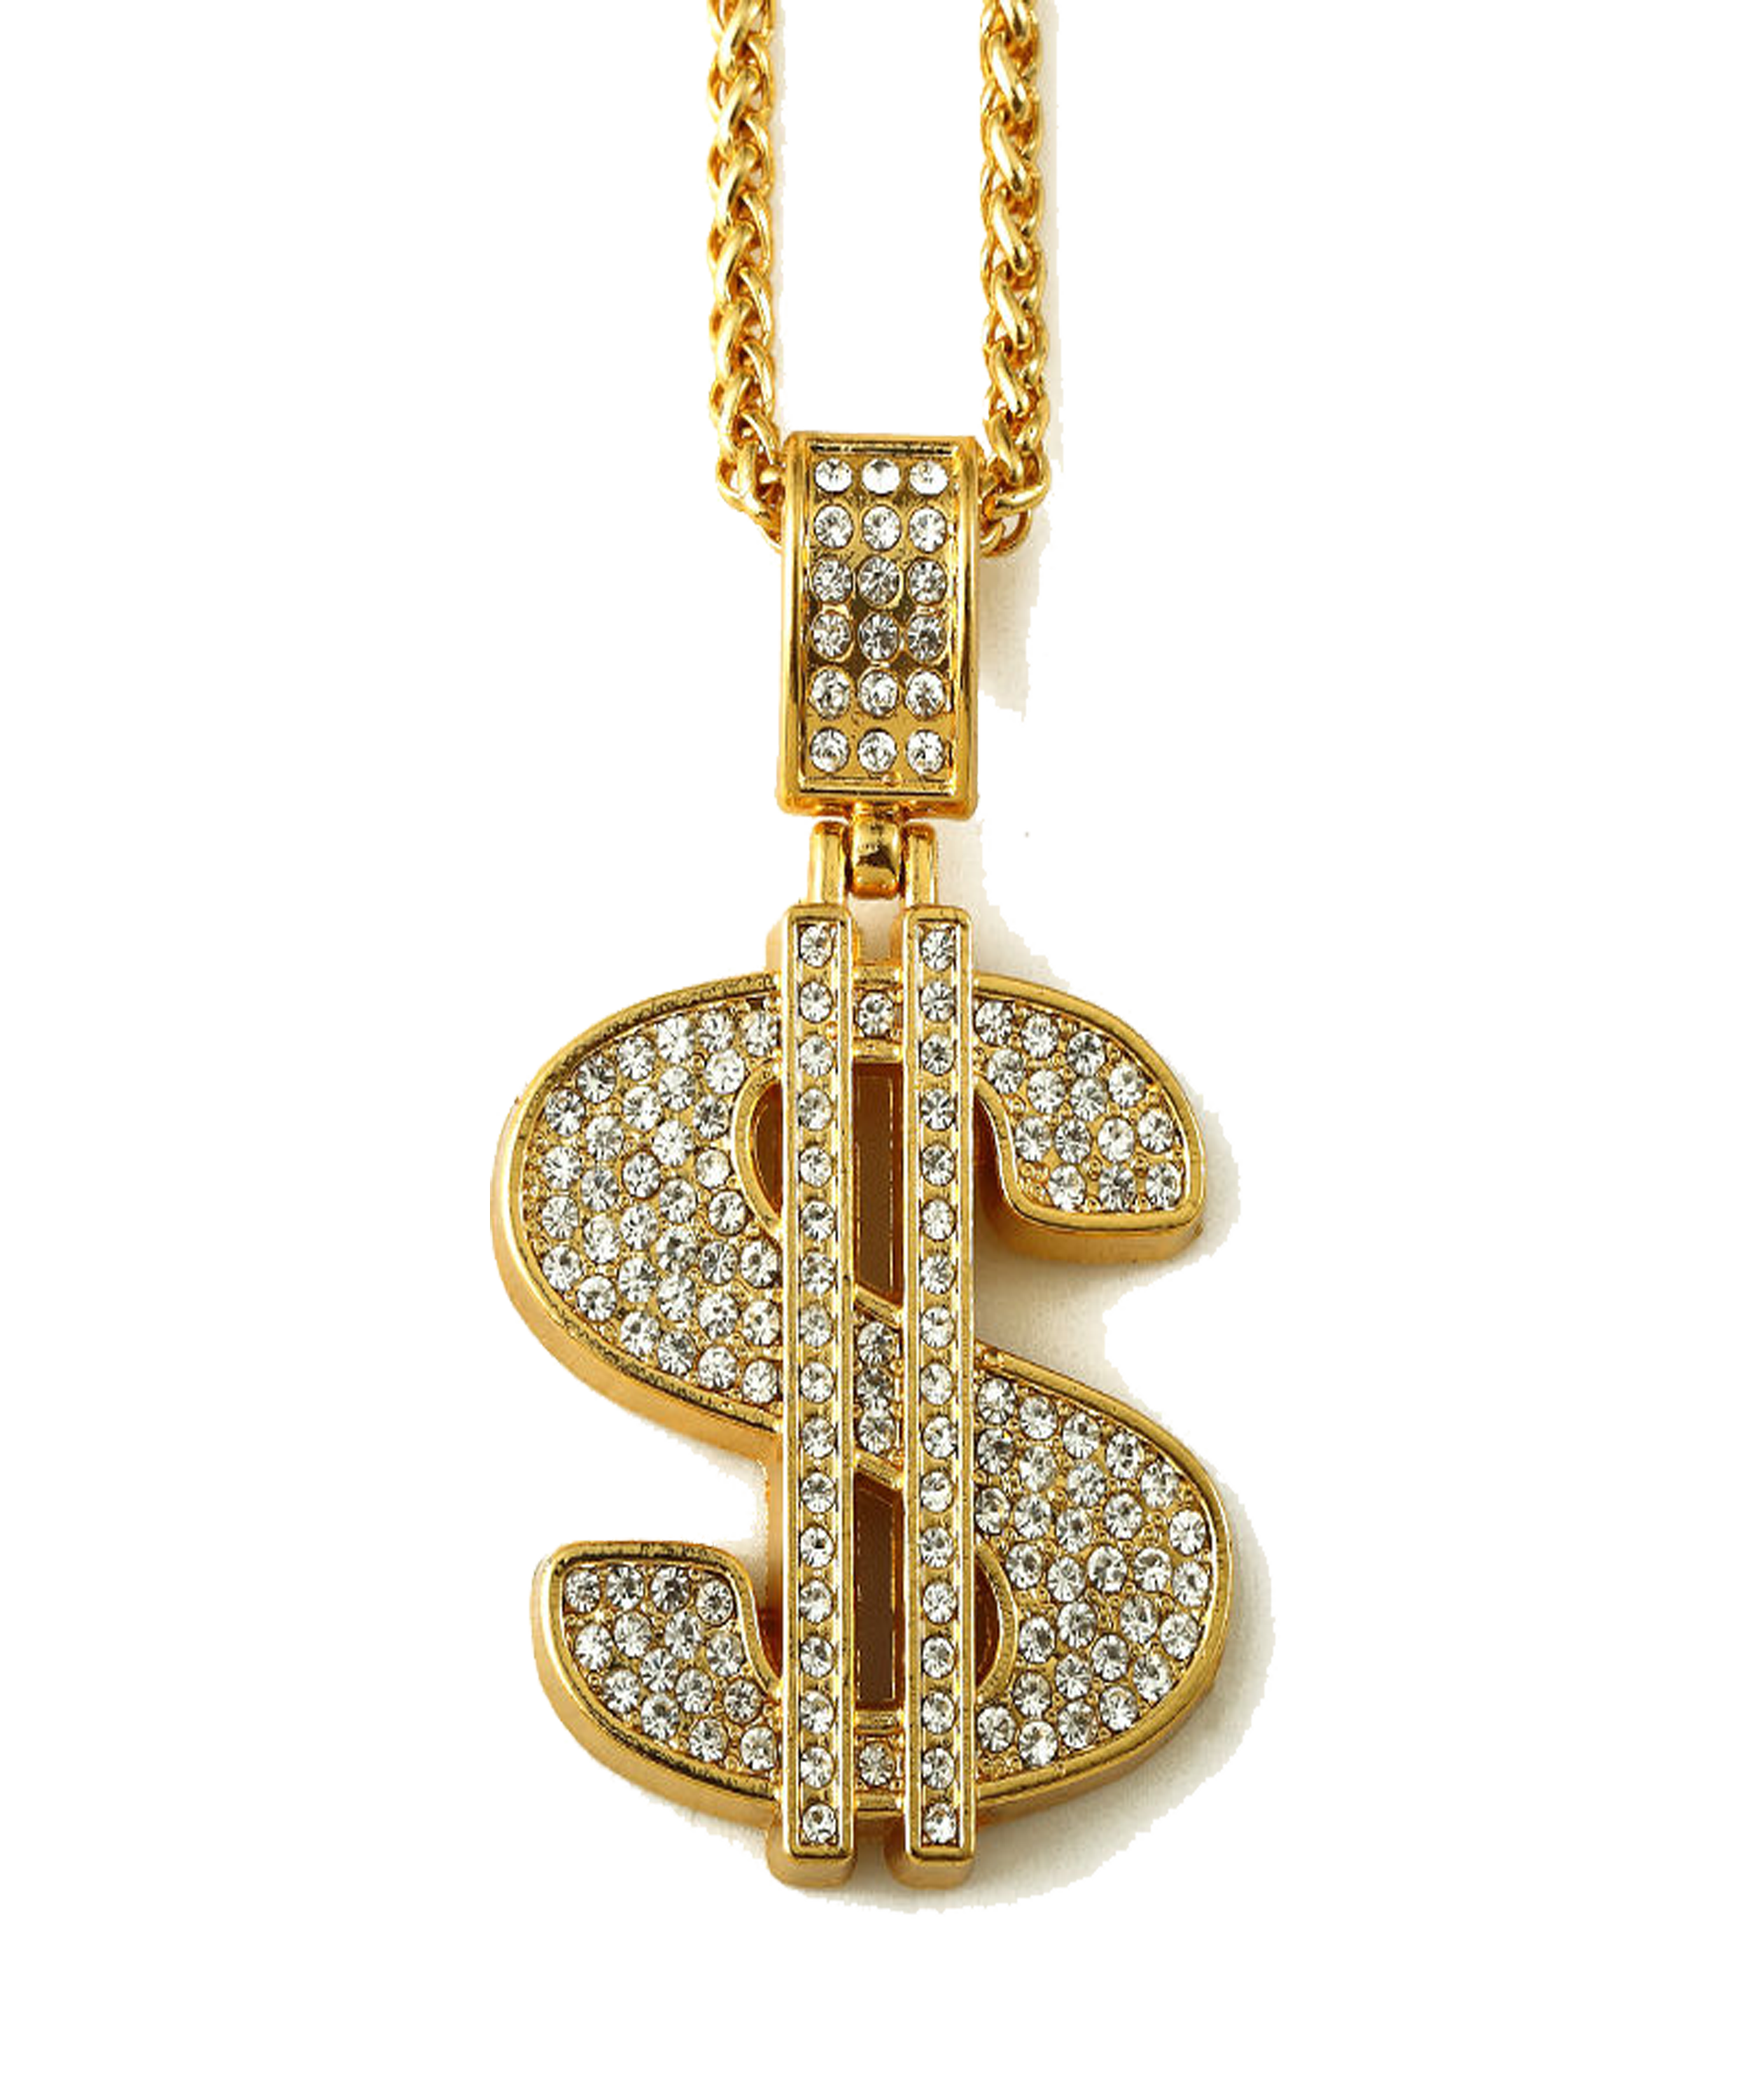 Mazalcrafts Shop Redbubble Gold Chains For Men Gold Chain Jewelry Gold Plated Jewelry